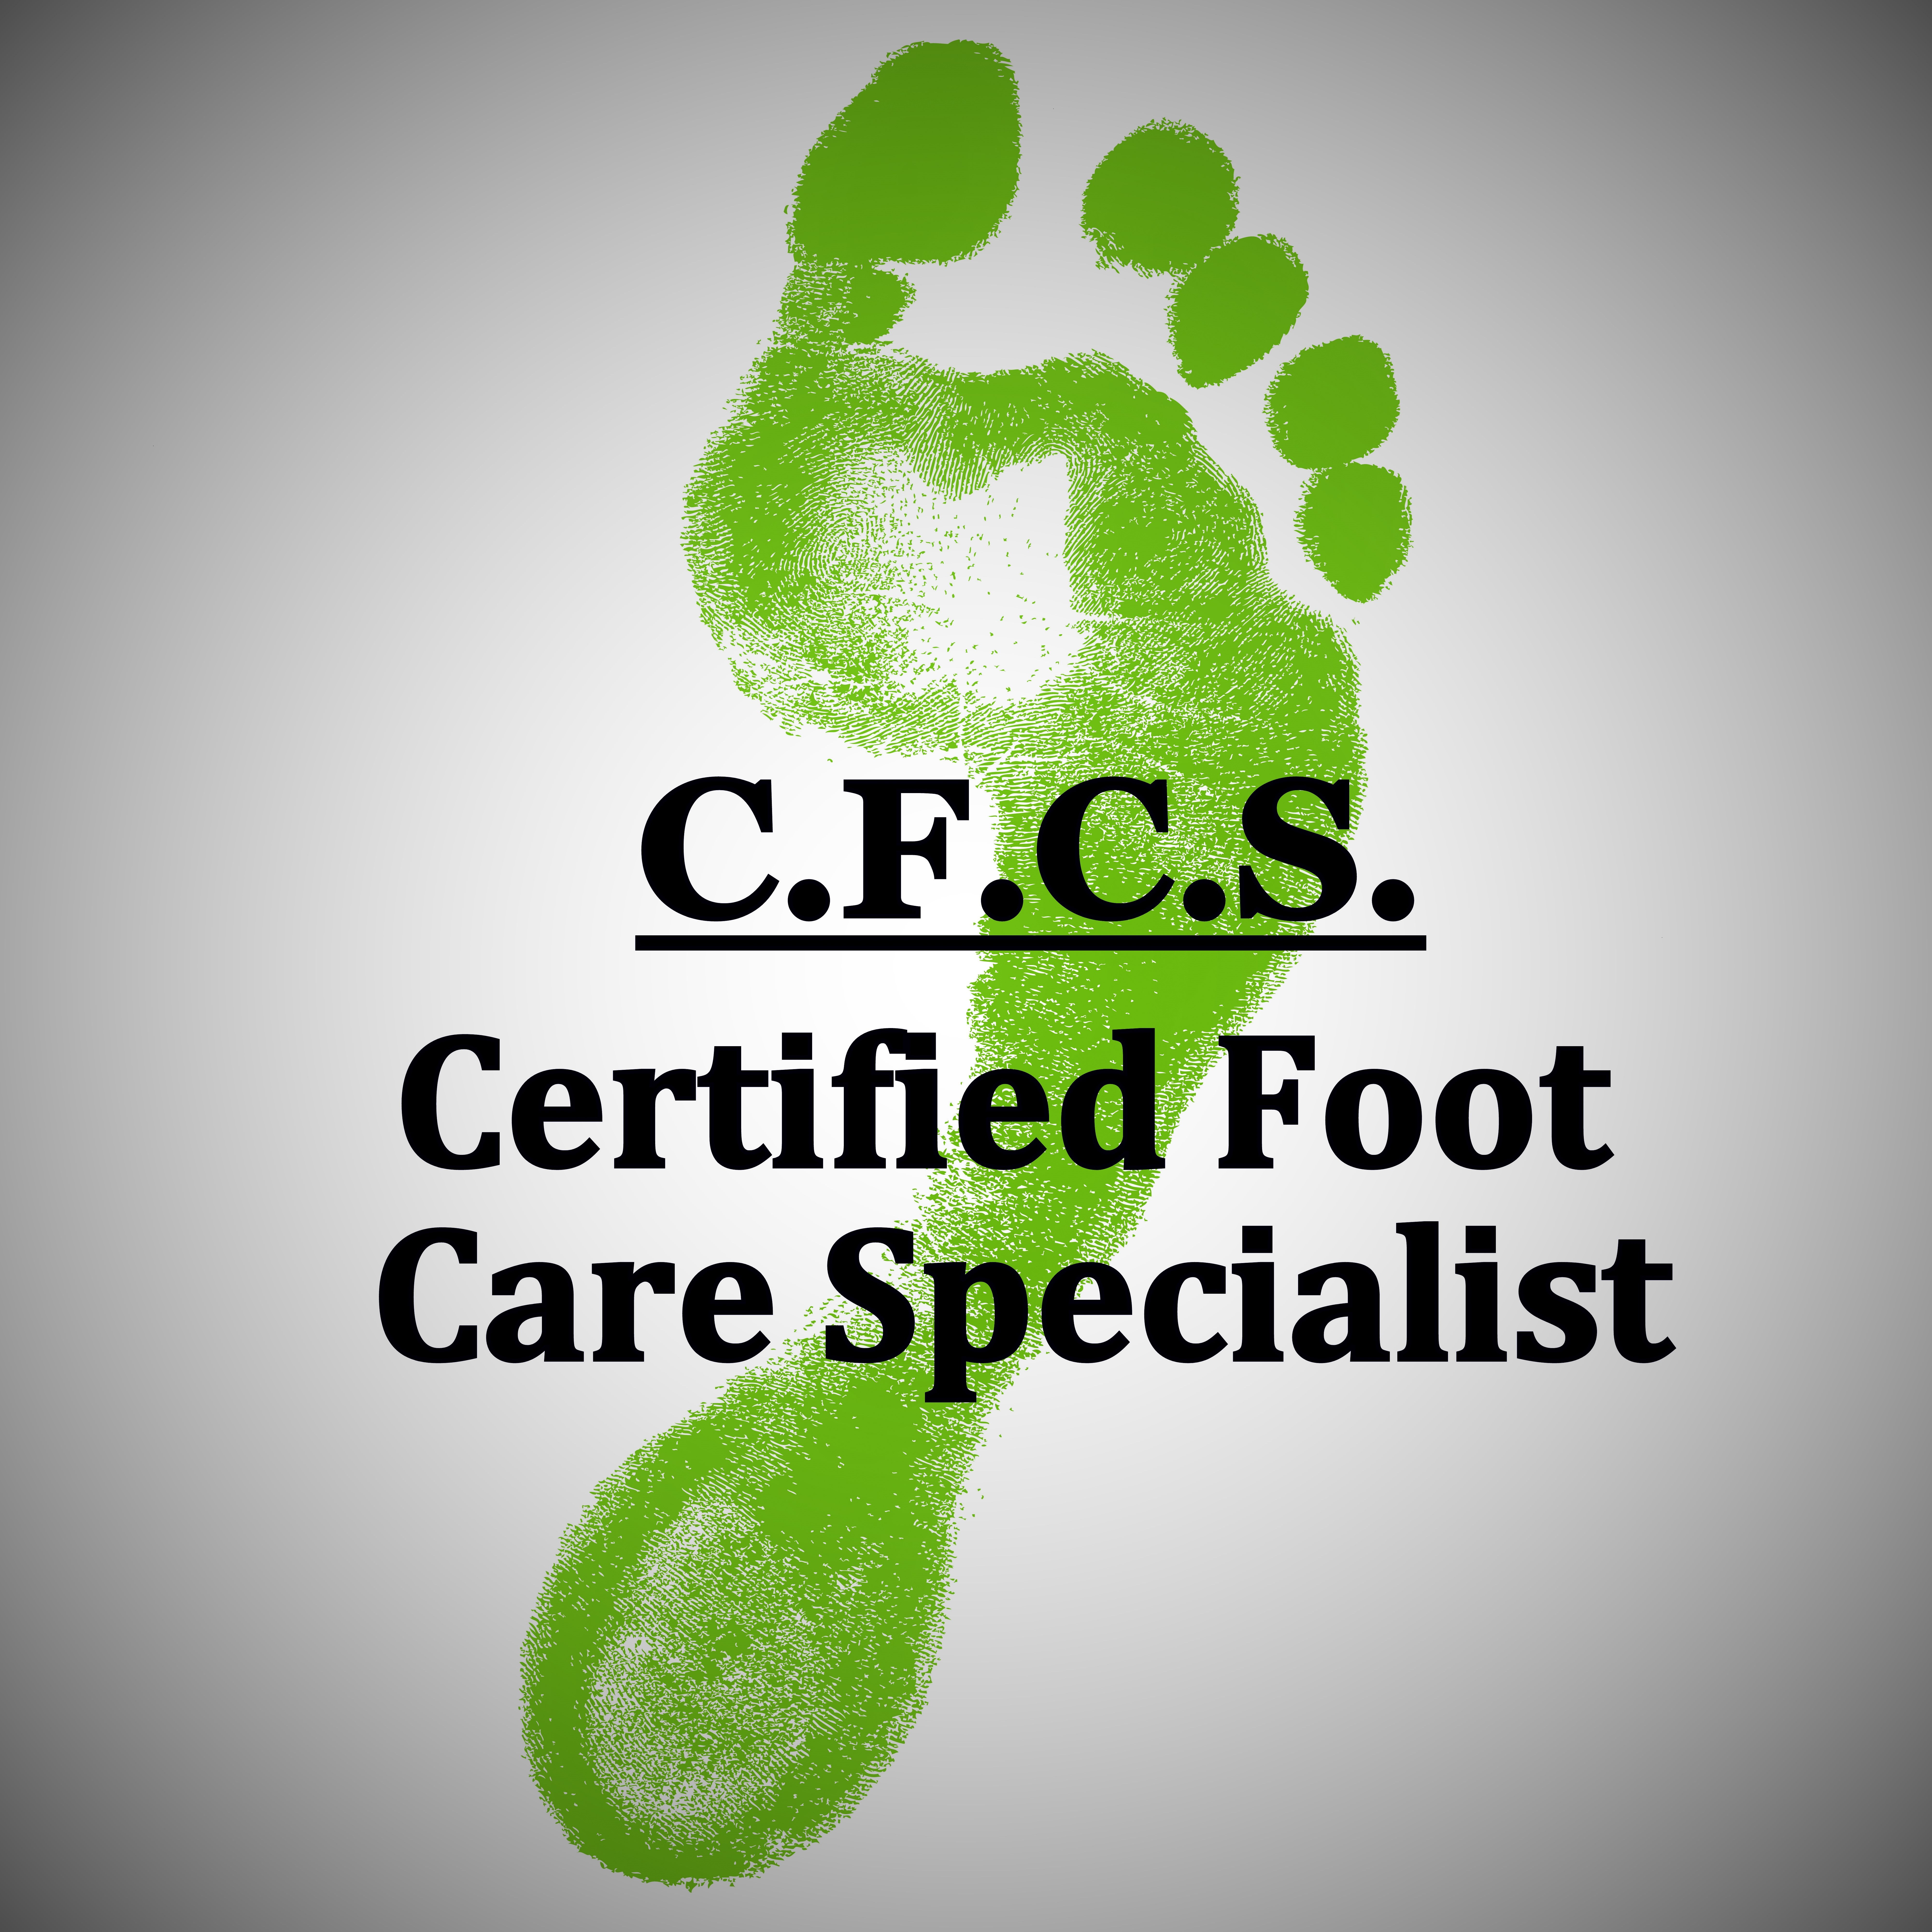 American foot care nurses association certification you can apply for reciprocal certification thru afcna xflitez Image collections